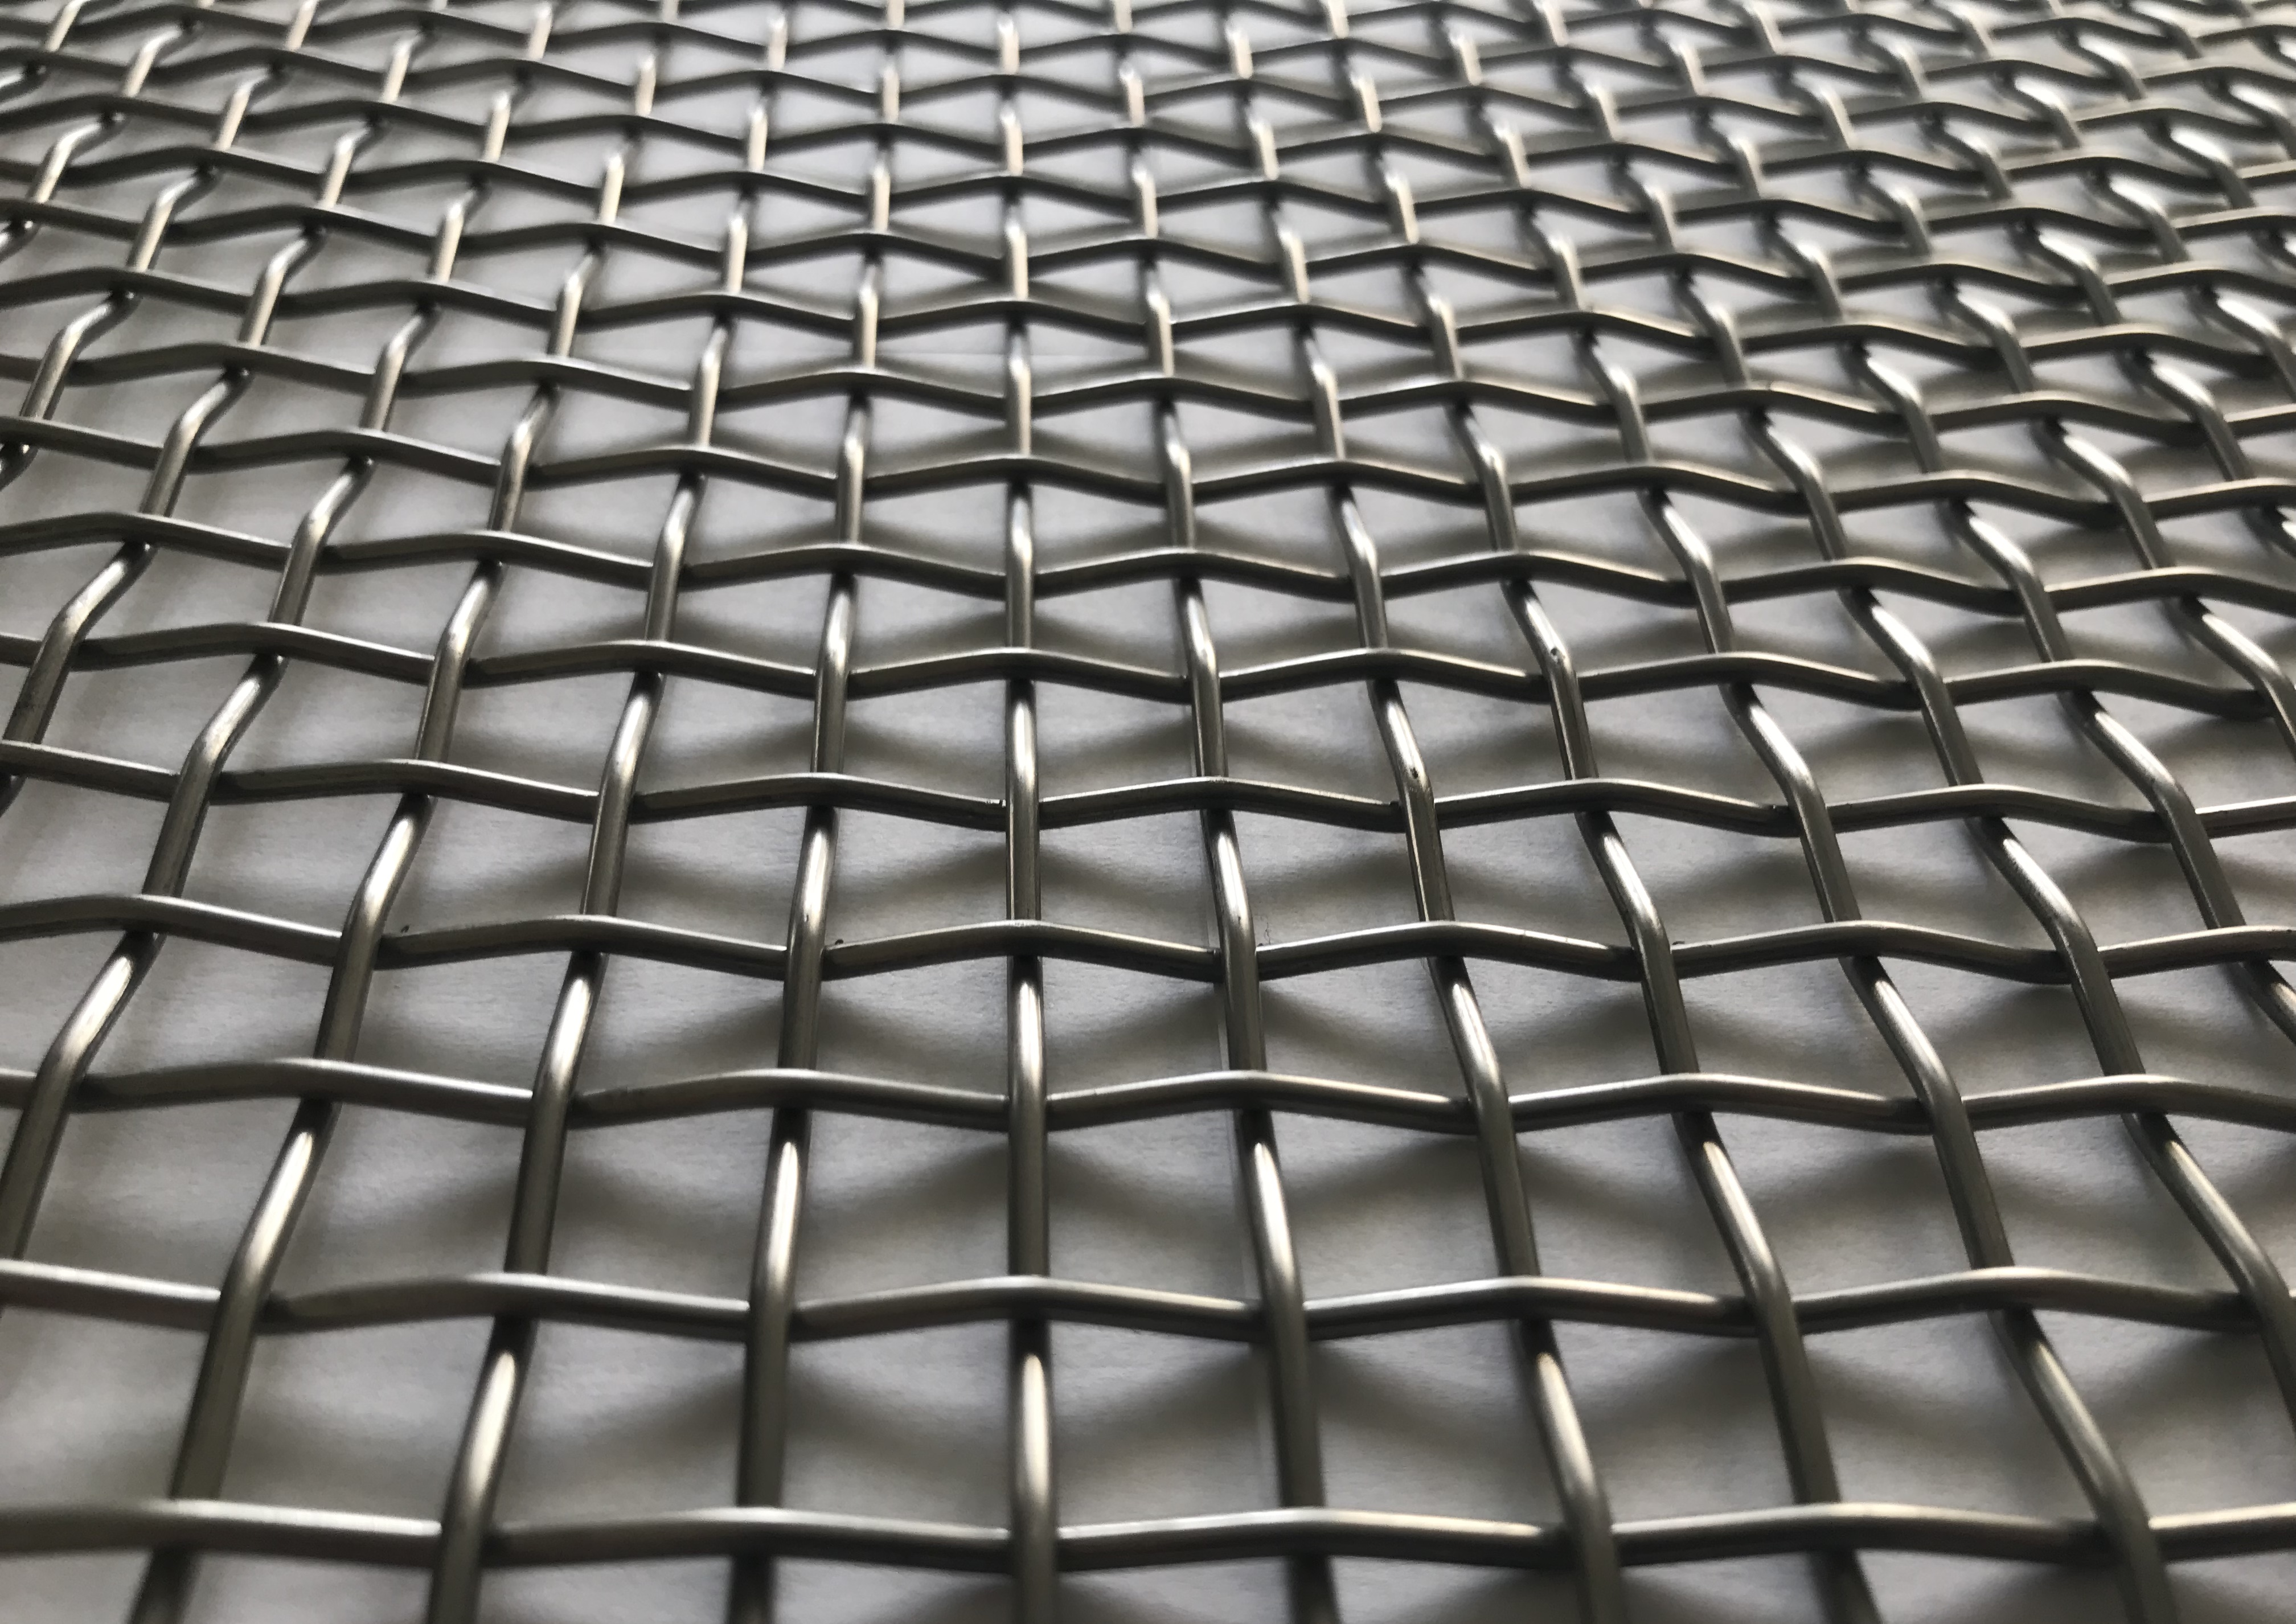 Wire screens with square holes